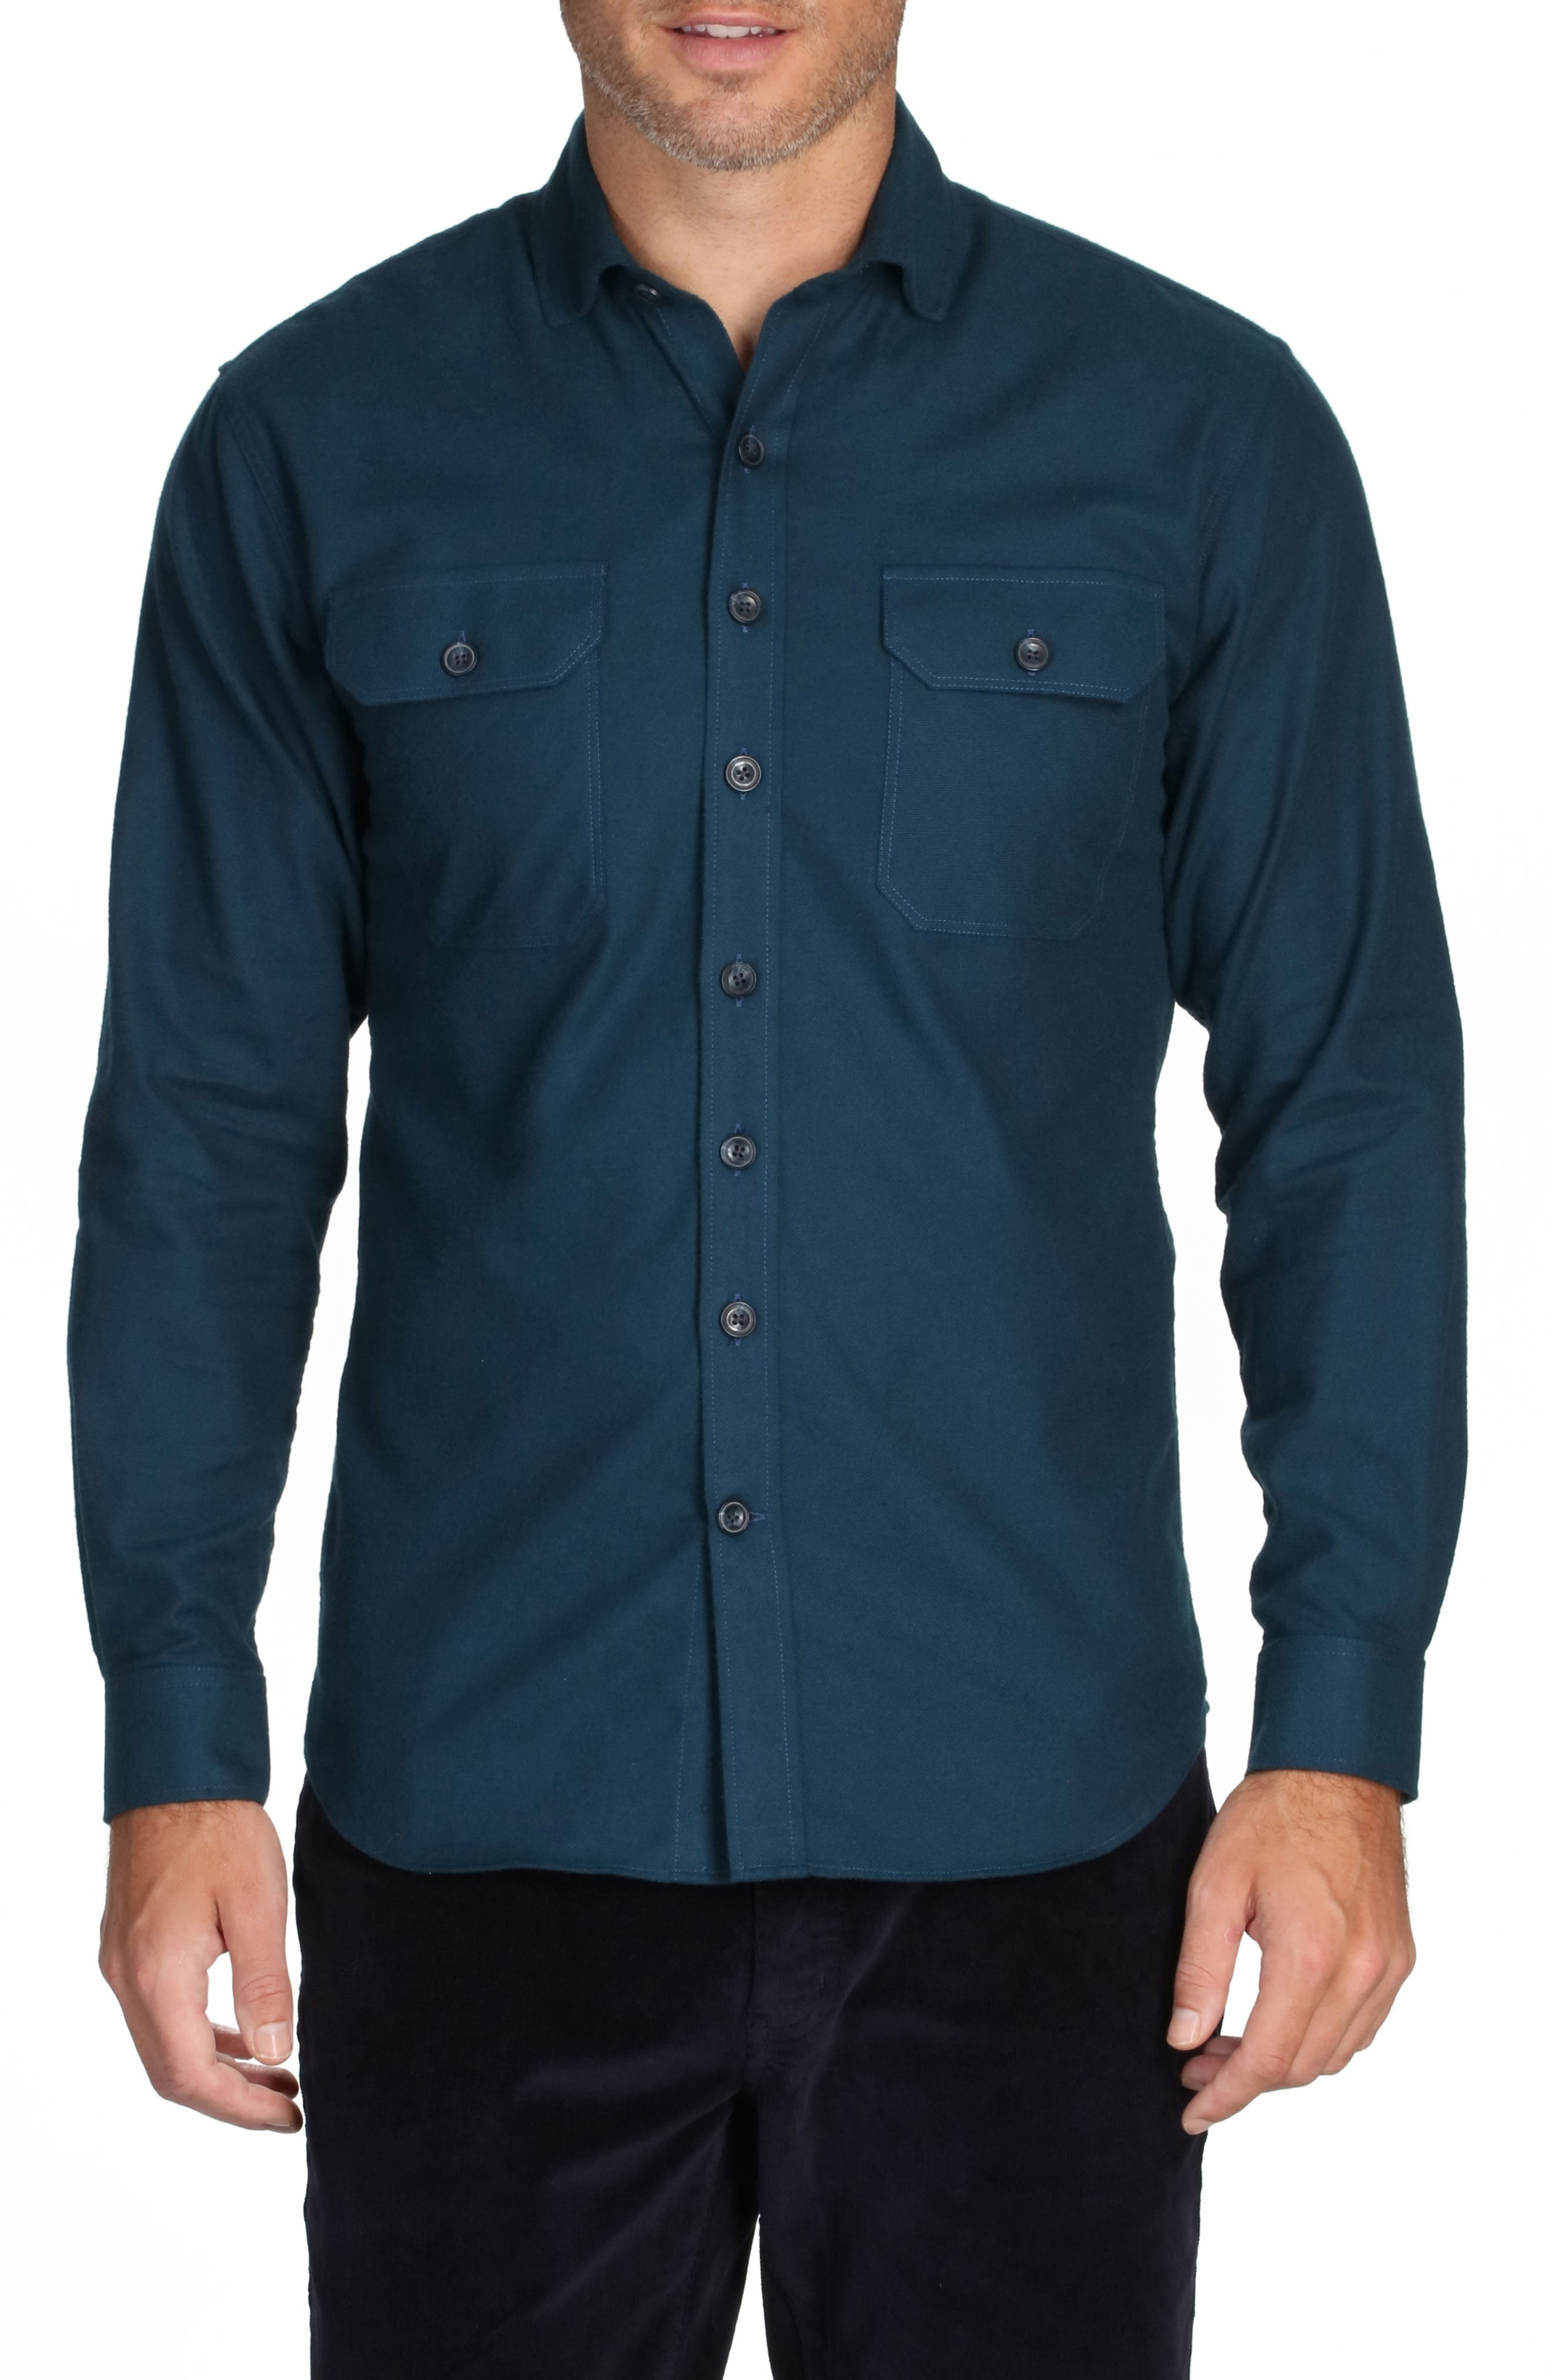 Jackson Everyday Solid Flannel Button-Up Shirt